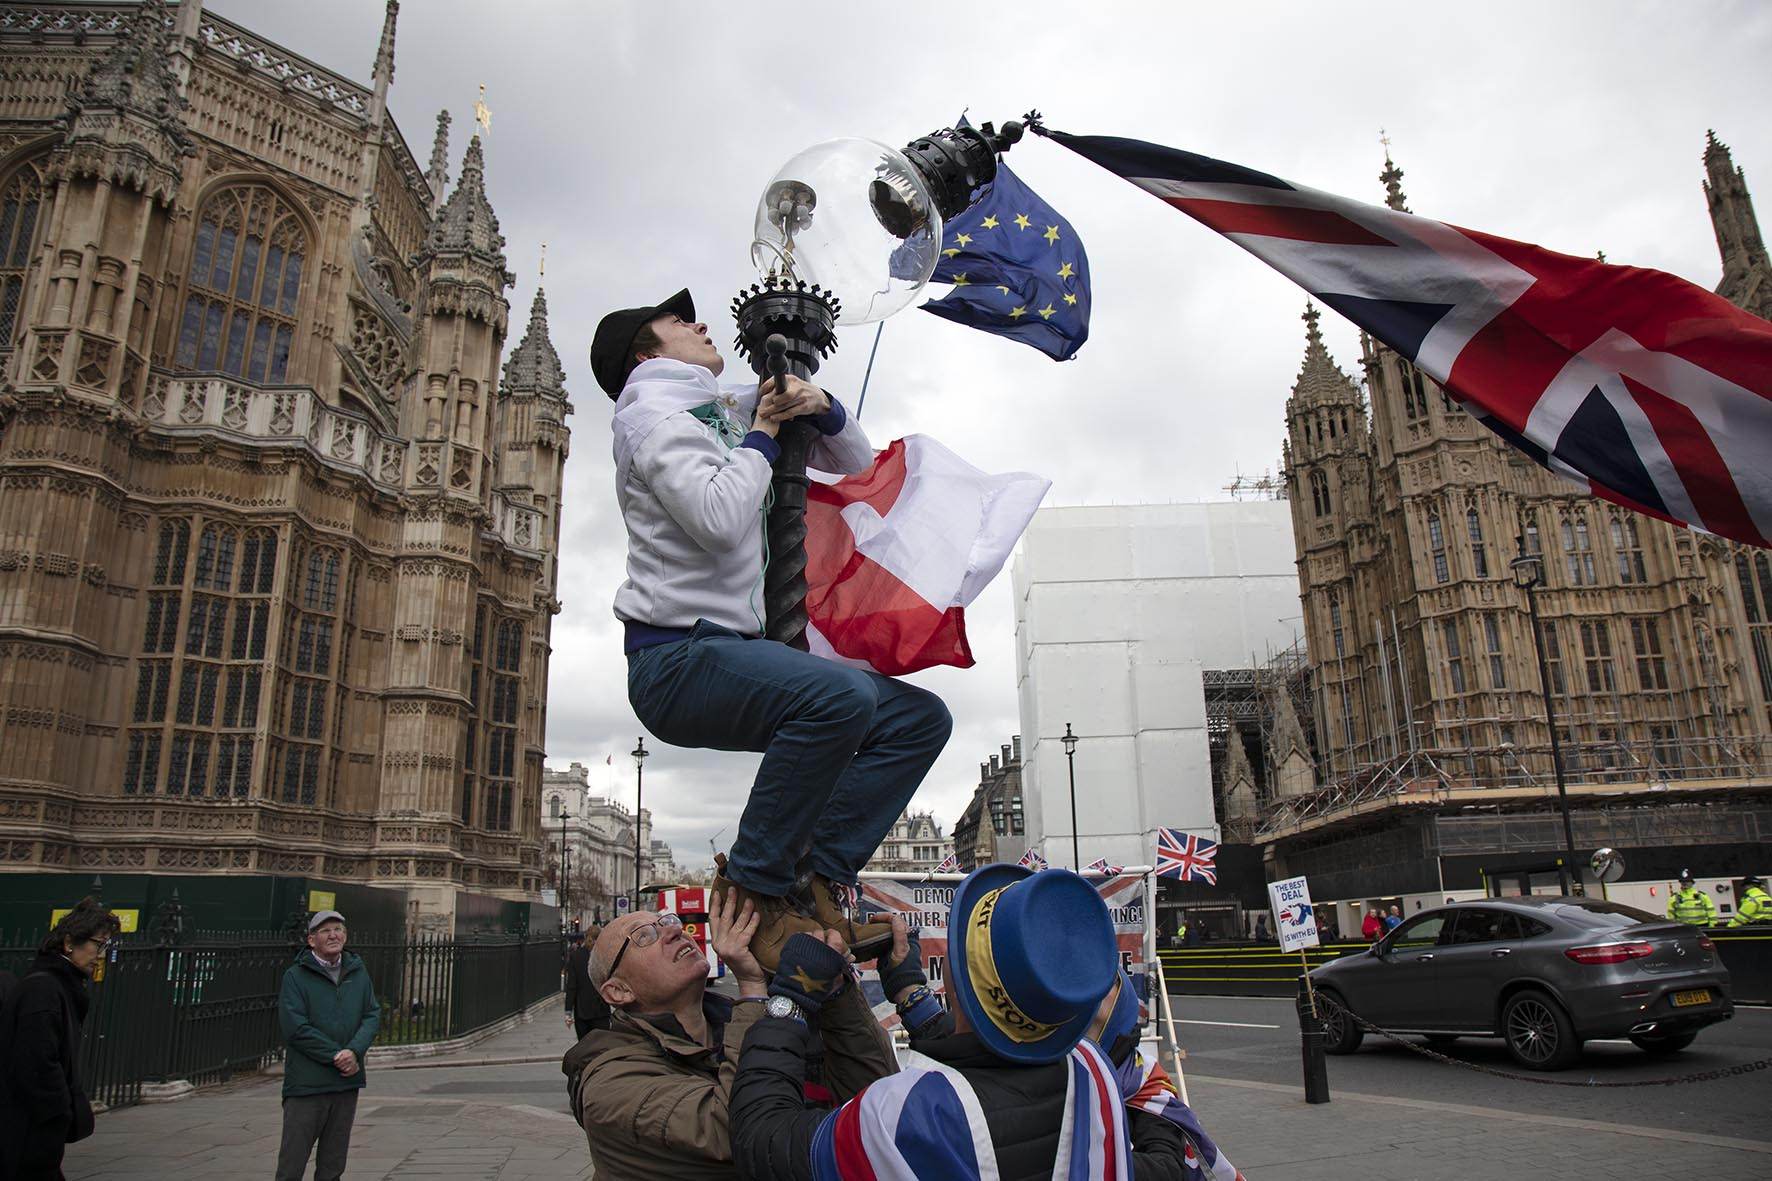 Brexit protesters attempt to rescue a falling street lamp in a scene reminiscent of Raising the Flag on Iwo Jima, the iconic photograph taken by Joe Rosenthal, in Westminster on 4th April 2019.